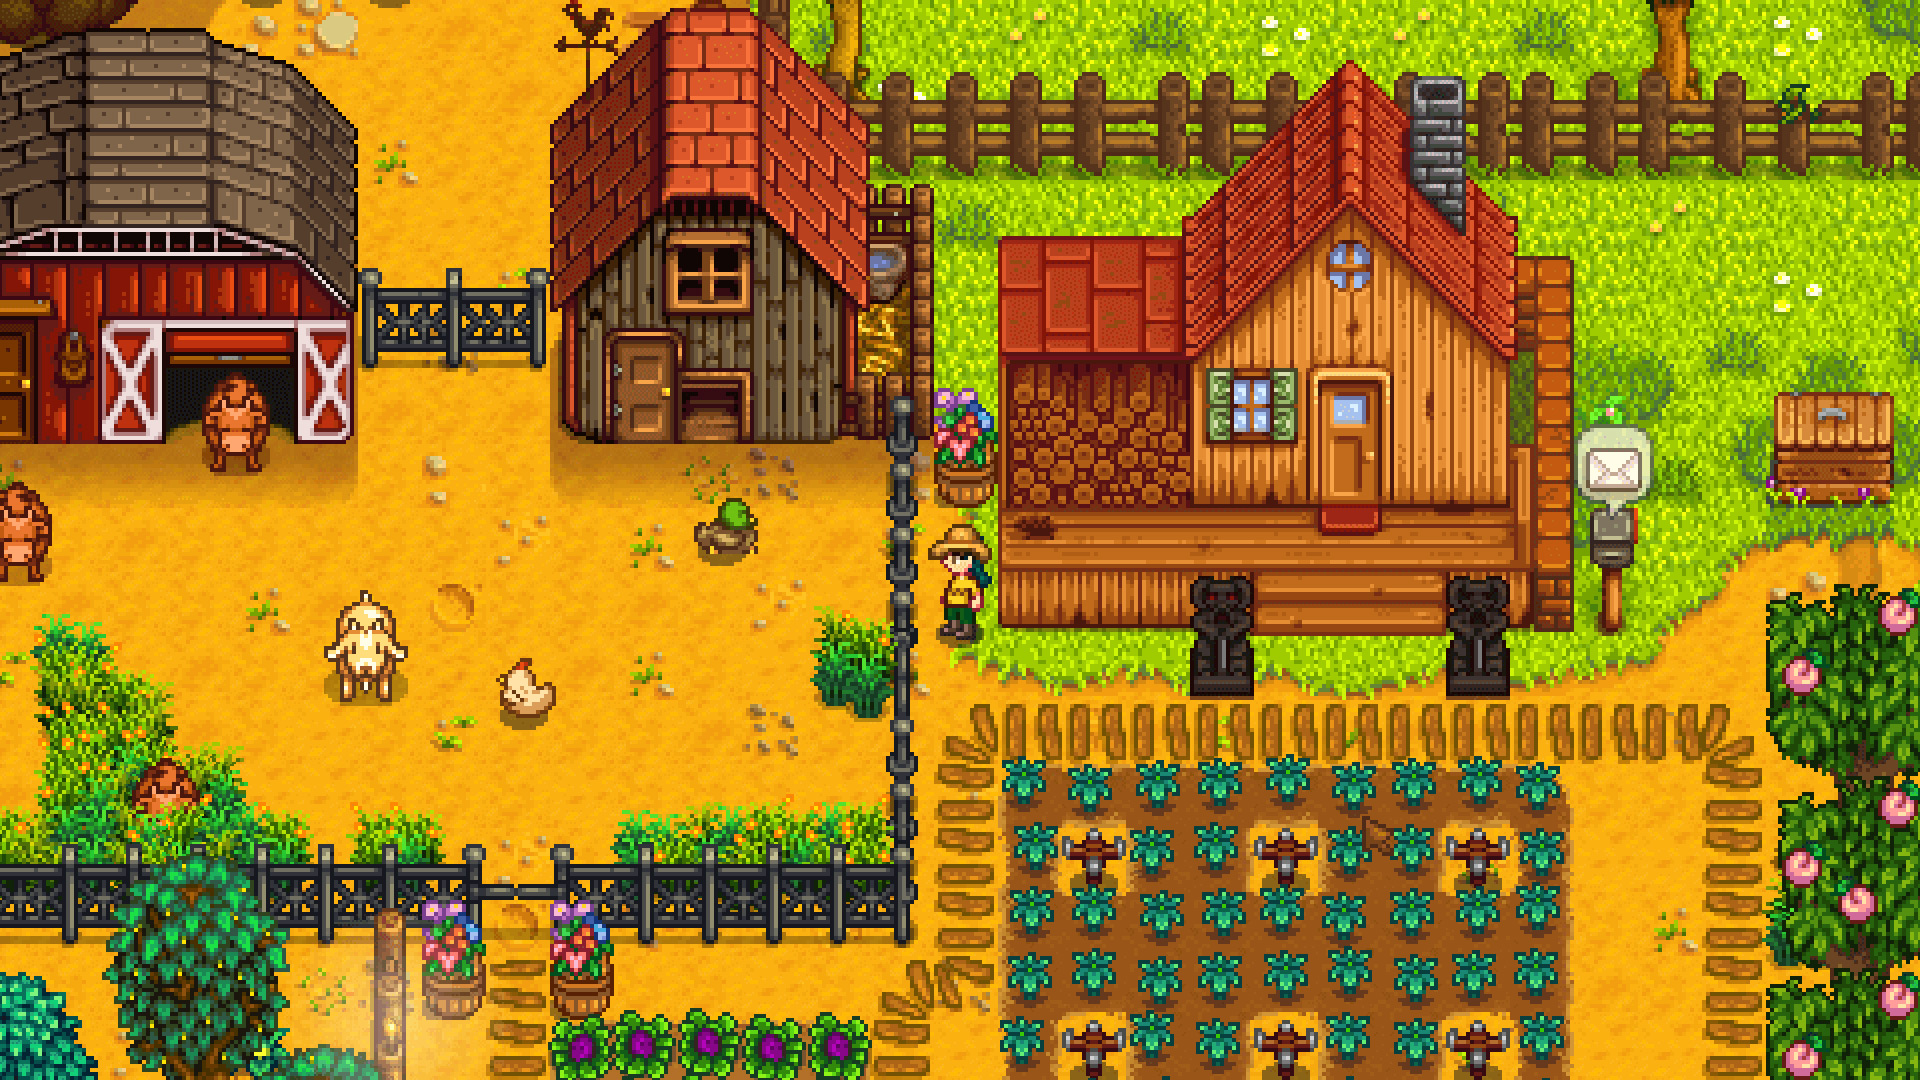 Stardew Valley has a performance update on Switch screenshot